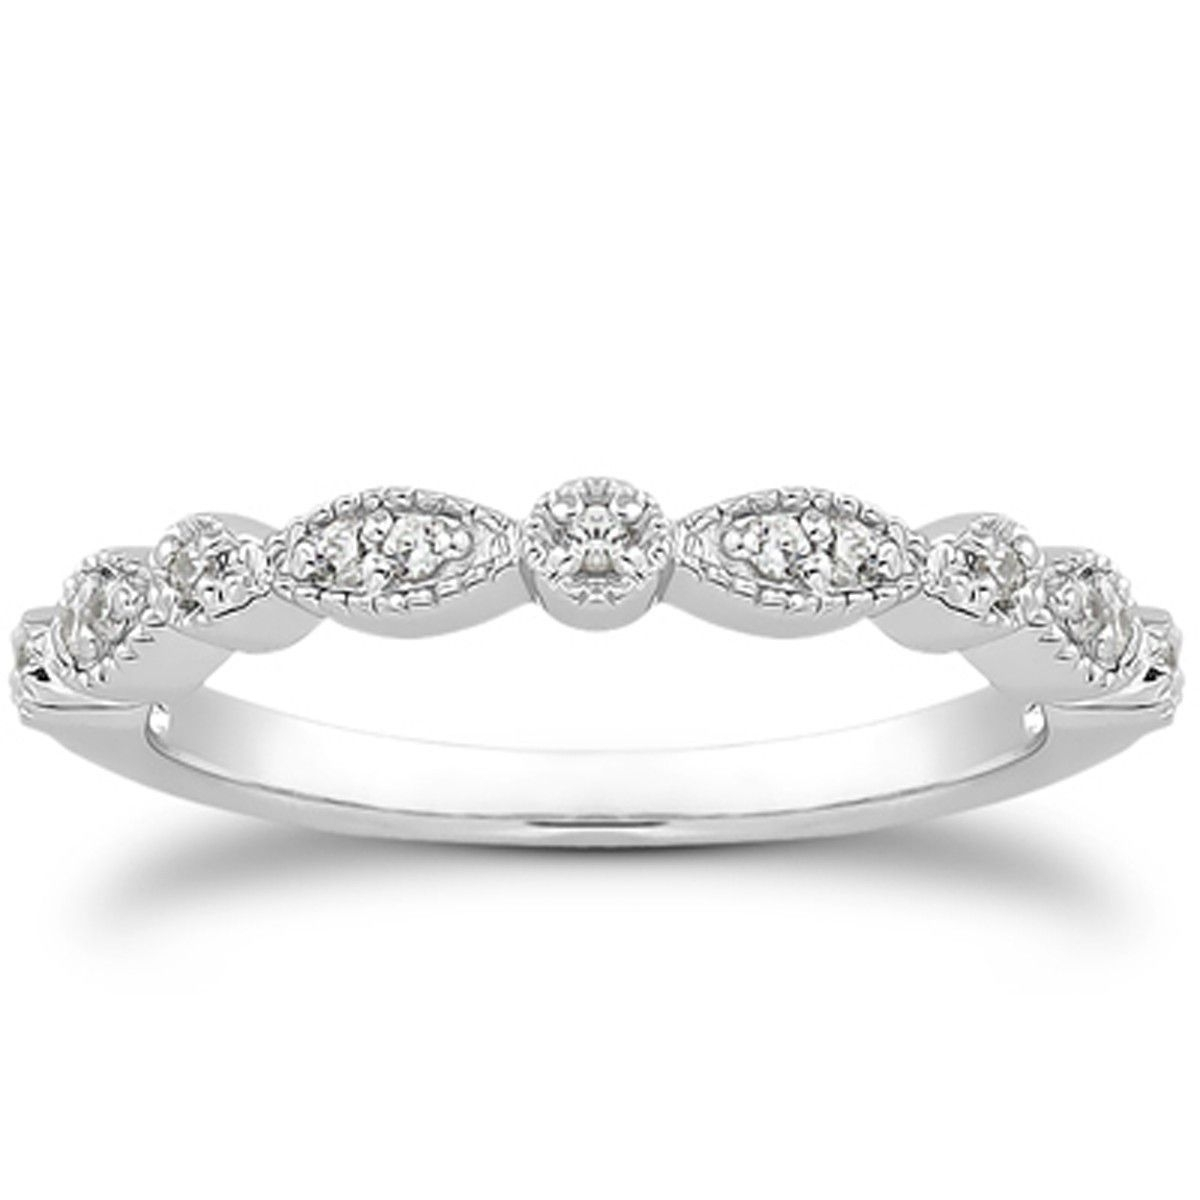 14K White Gold Vintage Look Fancy Pave Diamond Milgrain Wedding Ring Throughout Most Current Diamond Wave Vintage Style Anniversary Bands In 10K White Gold (View 3 of 15)